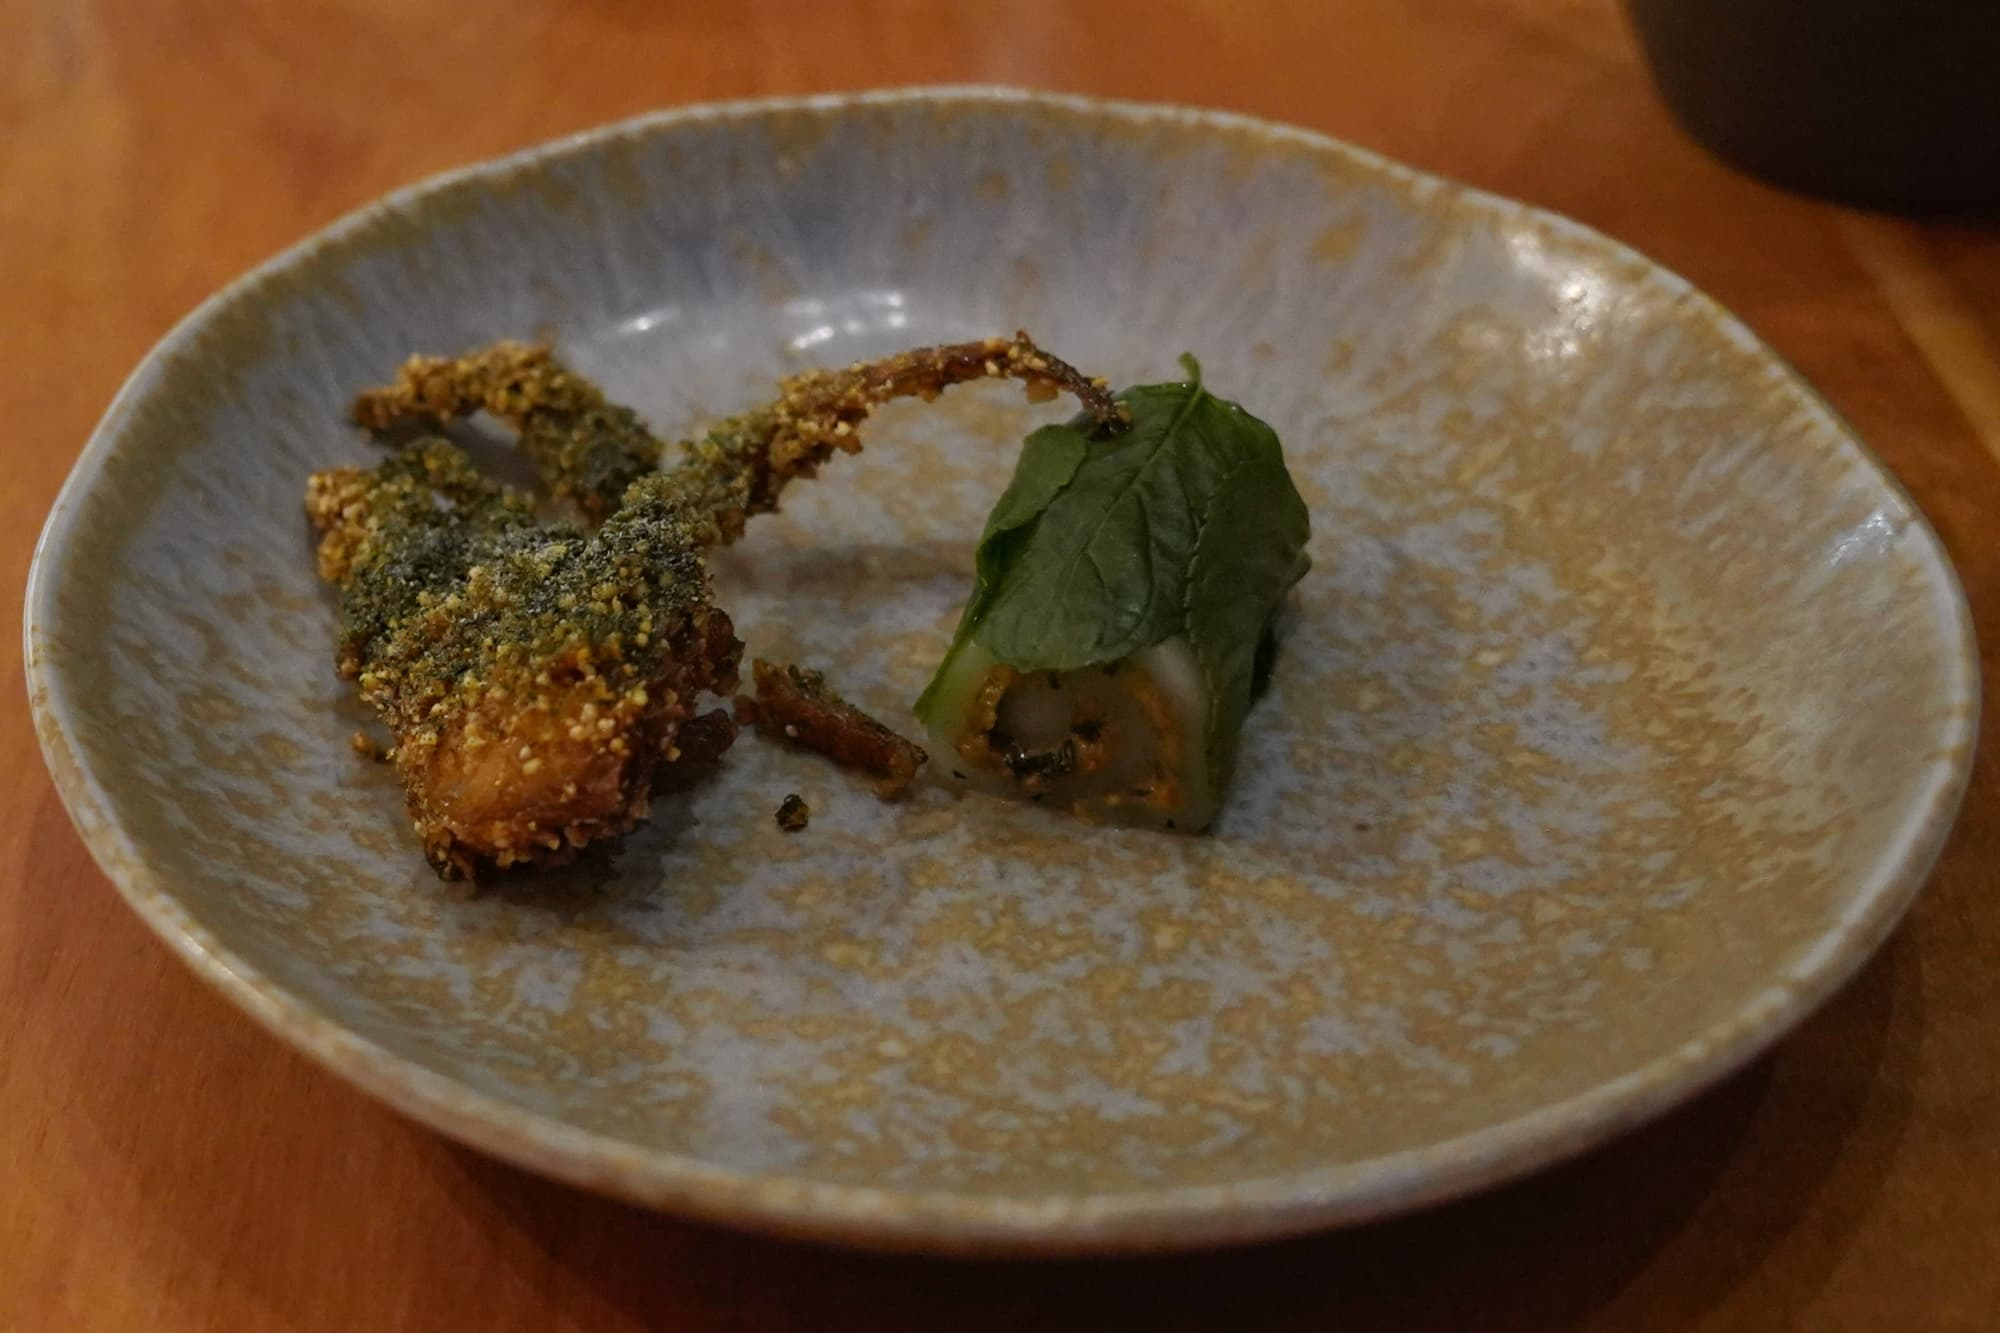 Soft shell crab, hoja santa and vinegar; and also mint and pistachio mochi.